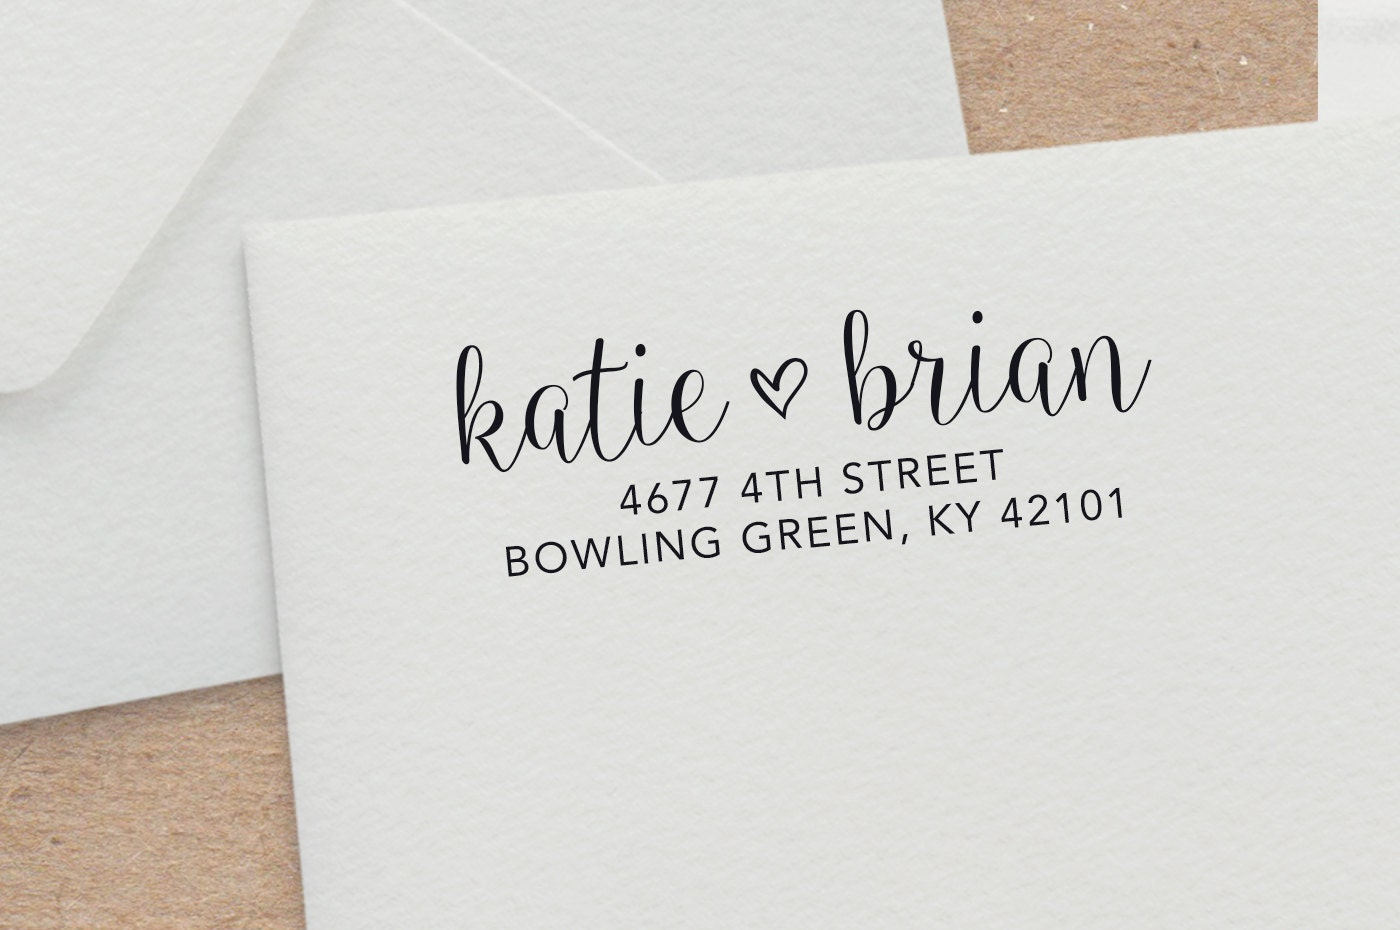 Wedding Invite Stamp: Custom Wedding Invitation Stamp Customized By BGregoryDesign